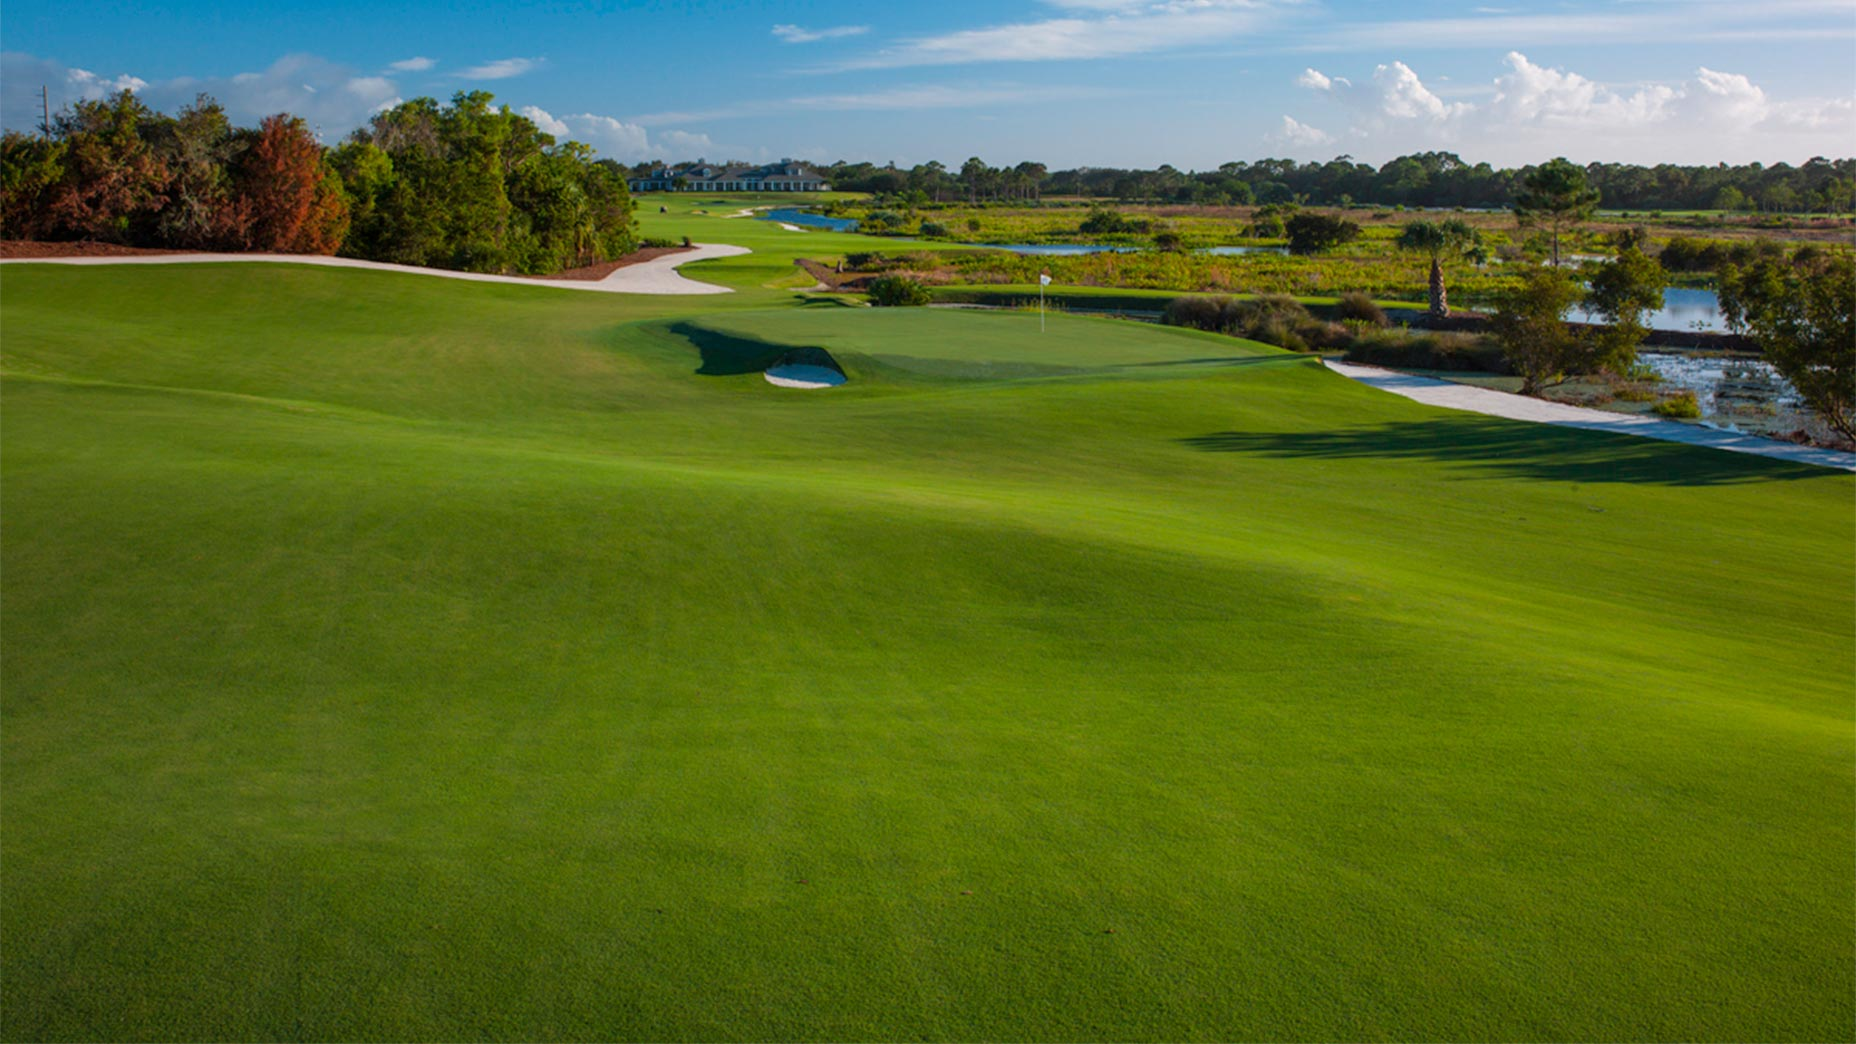 A view of the 17th hole at Medalist in Florida.